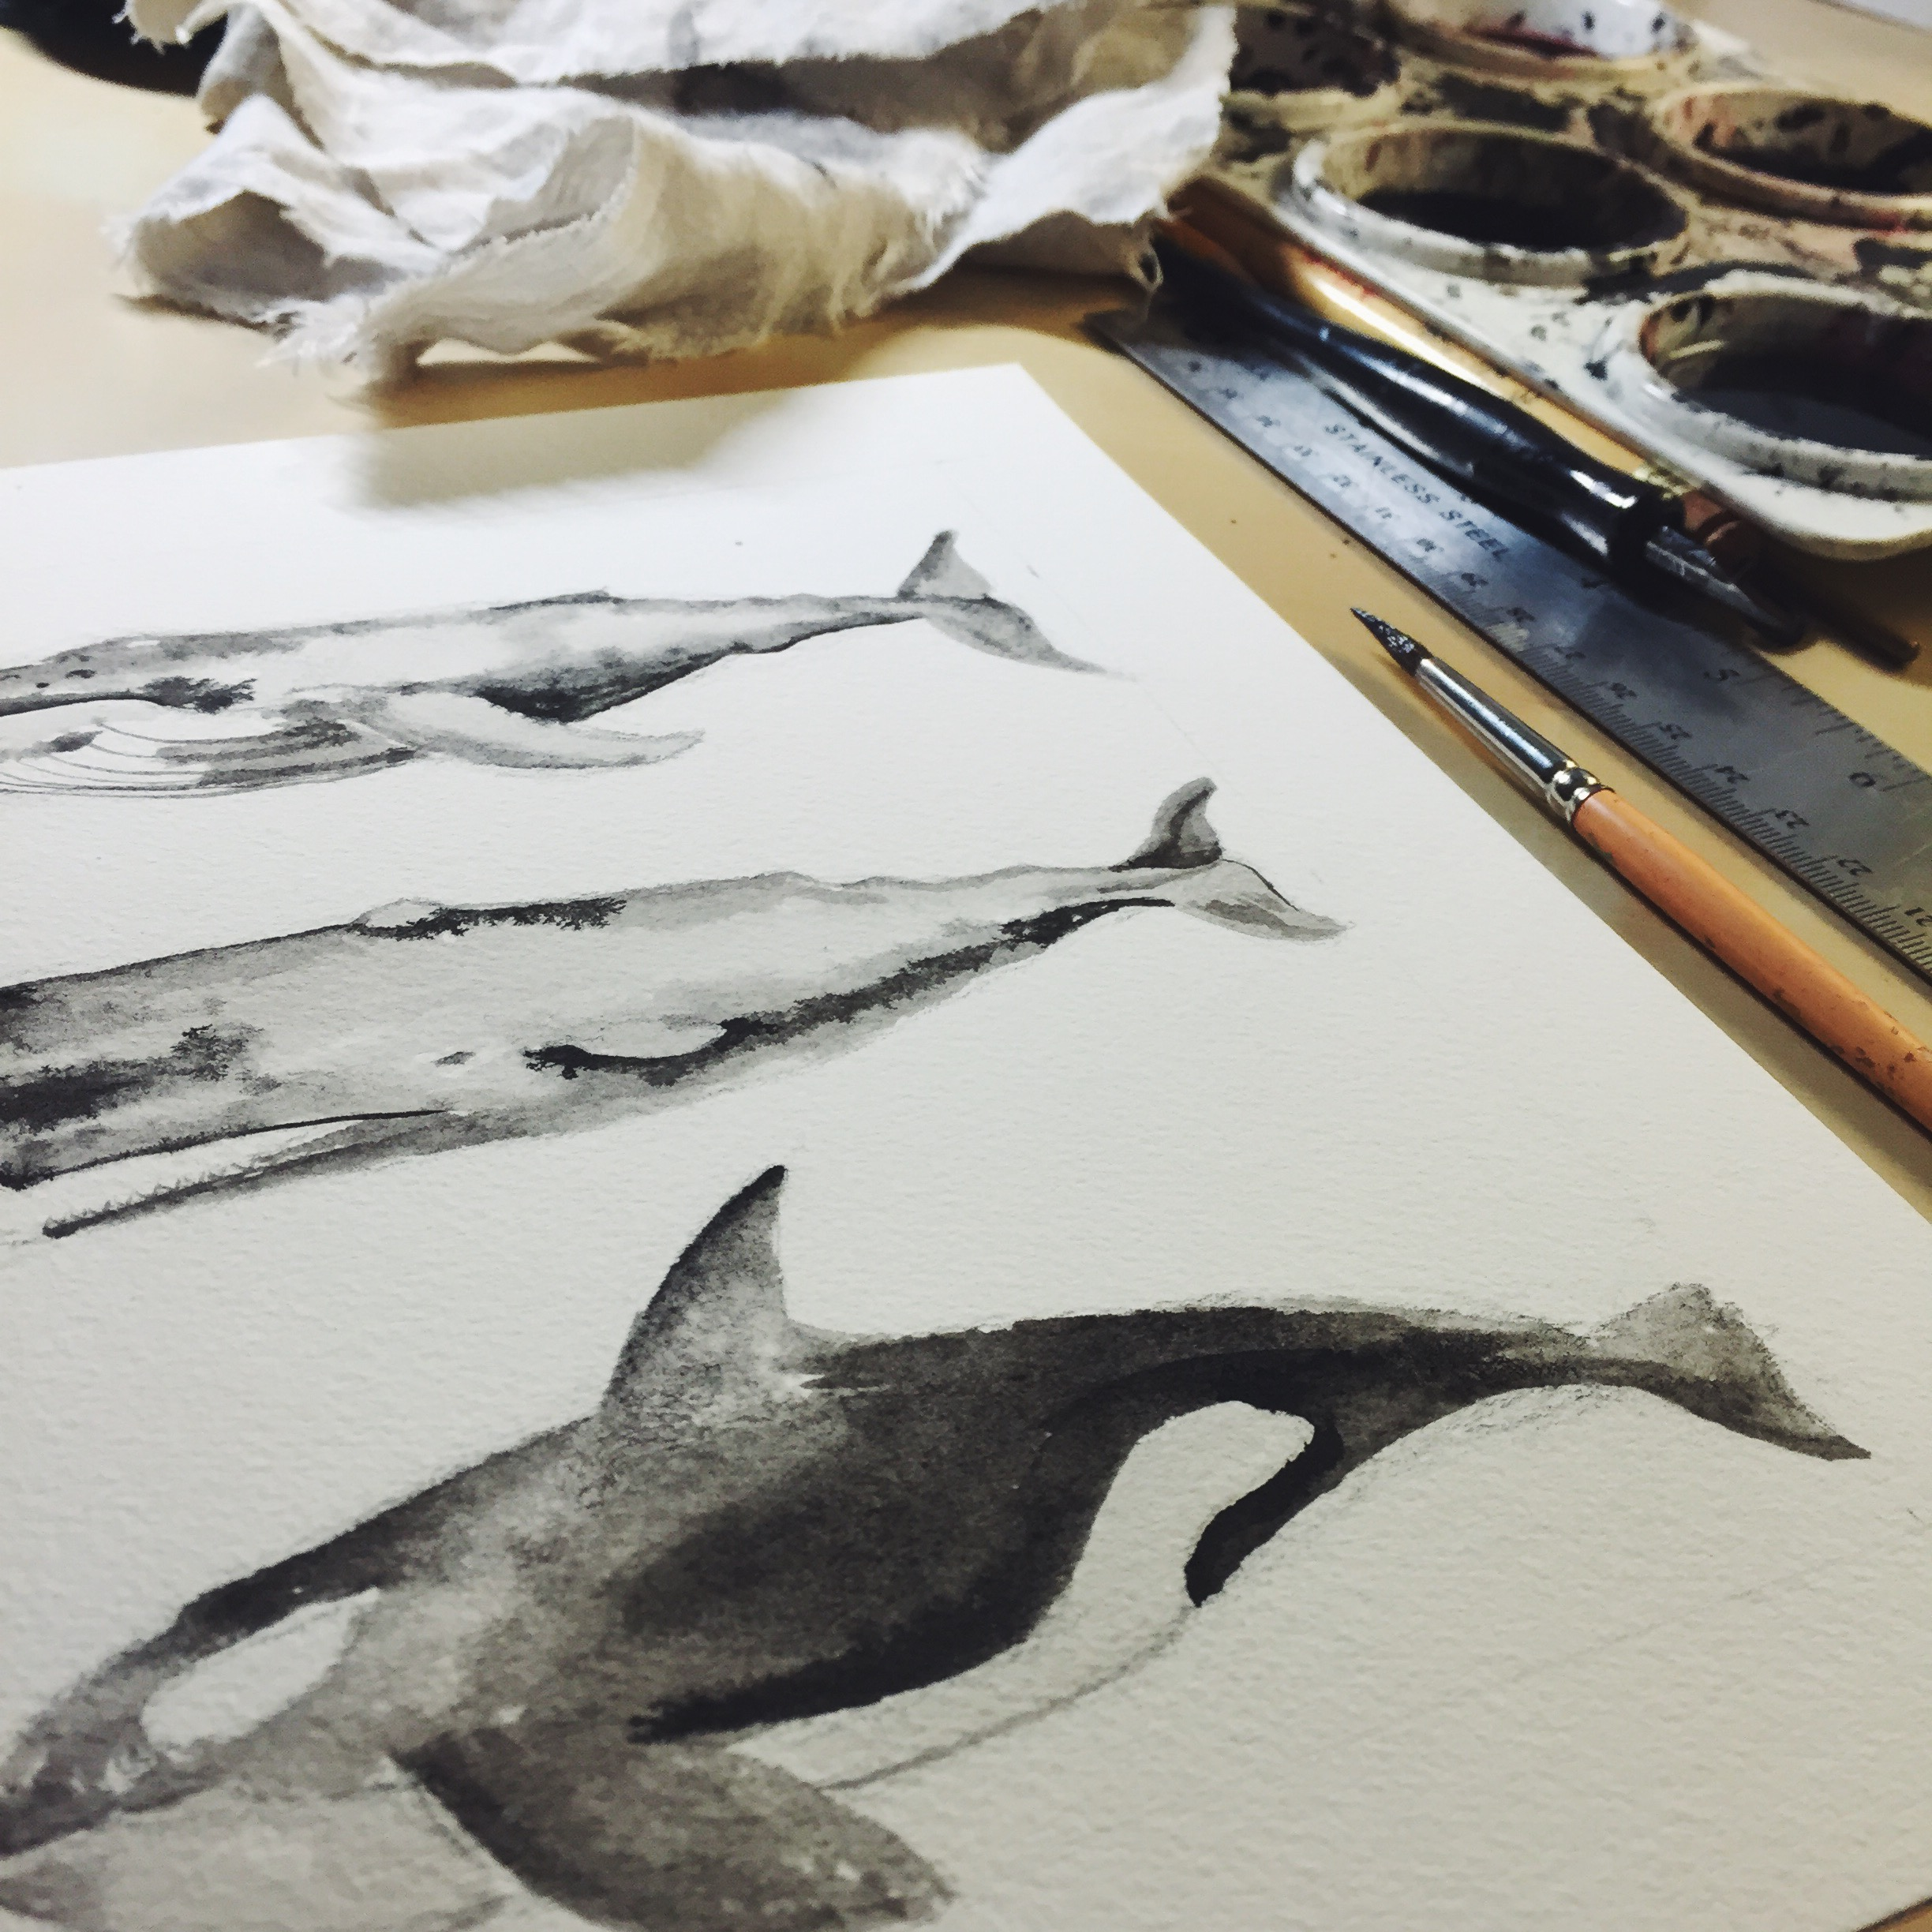 whales-orca-ink-watercolor-painting.jpg